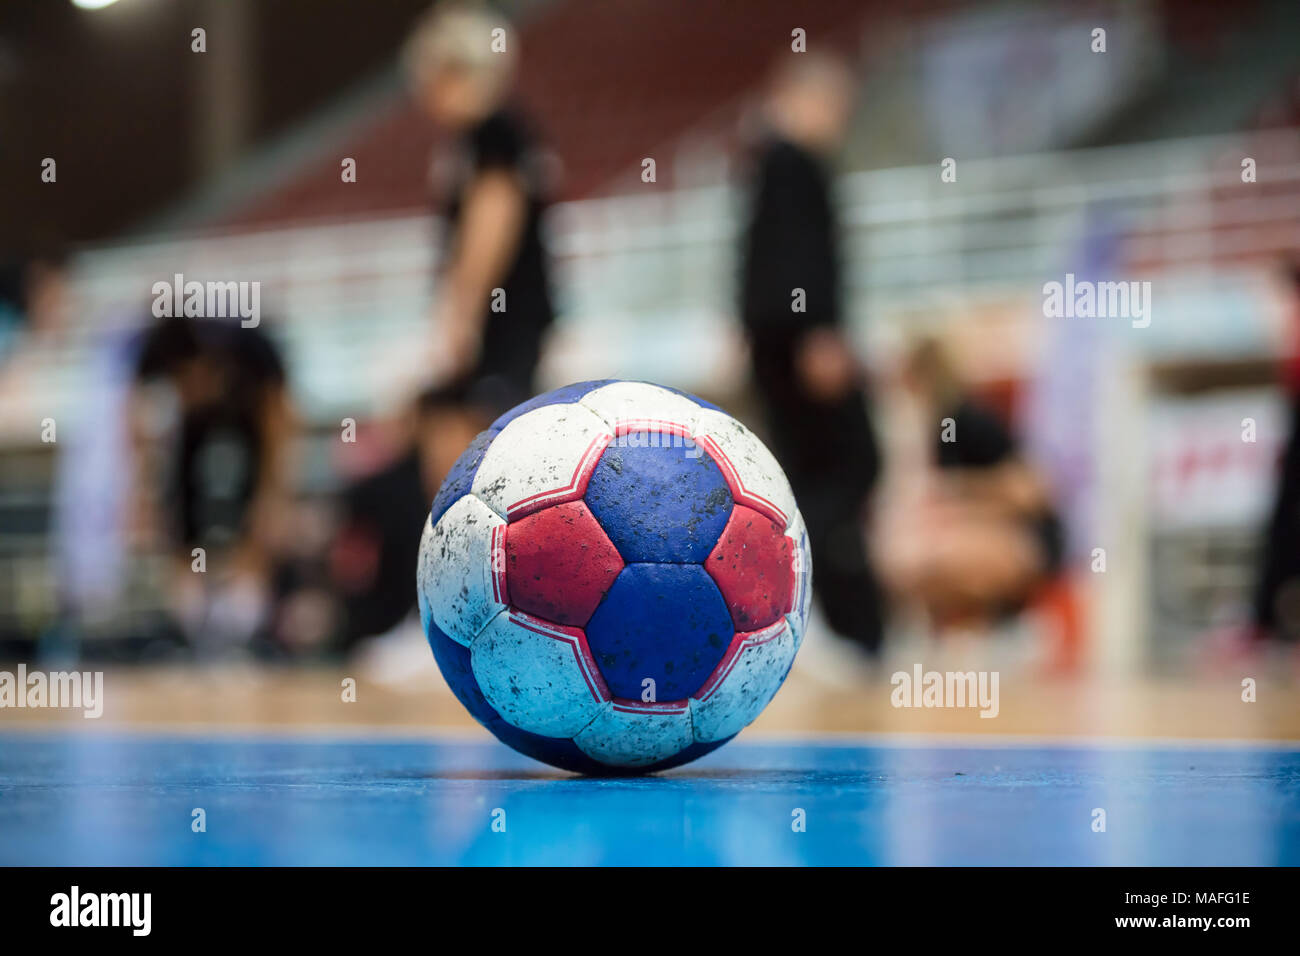 Handball ball on court' s floor. Ready for the match. Blurred referees, coaches and athletes and field background. - Stock Image